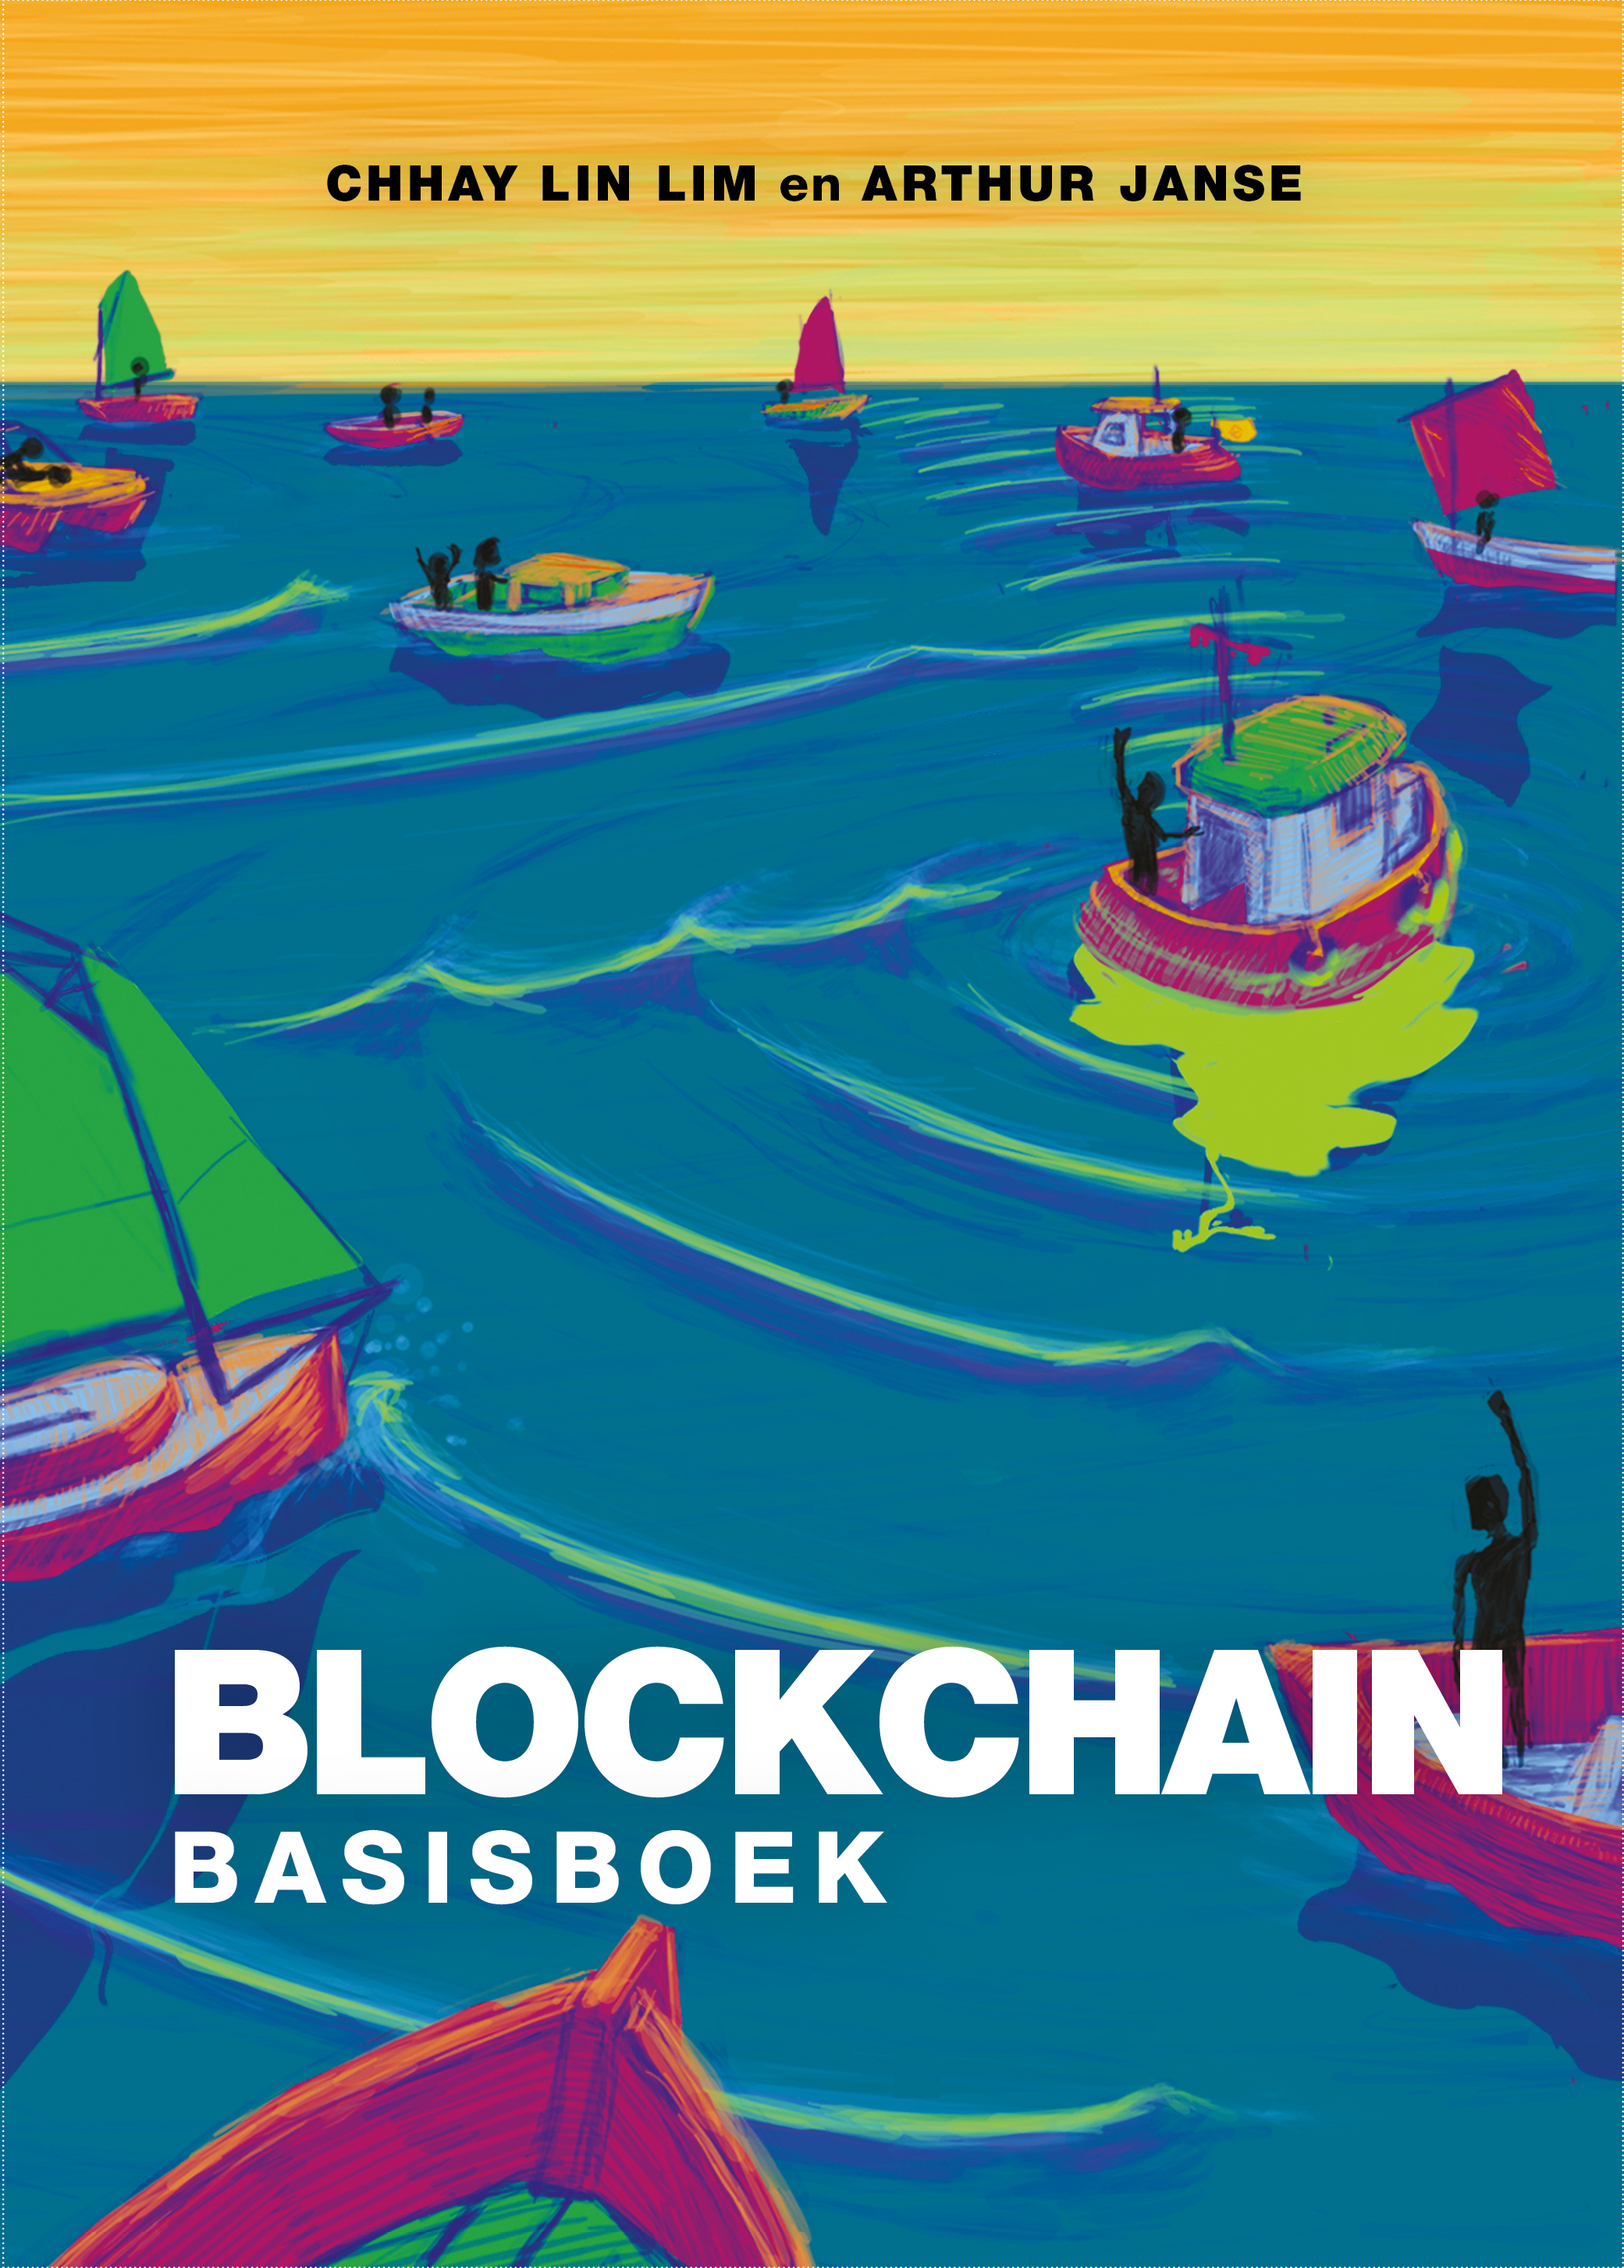 Blockchain Basics Book (2020)